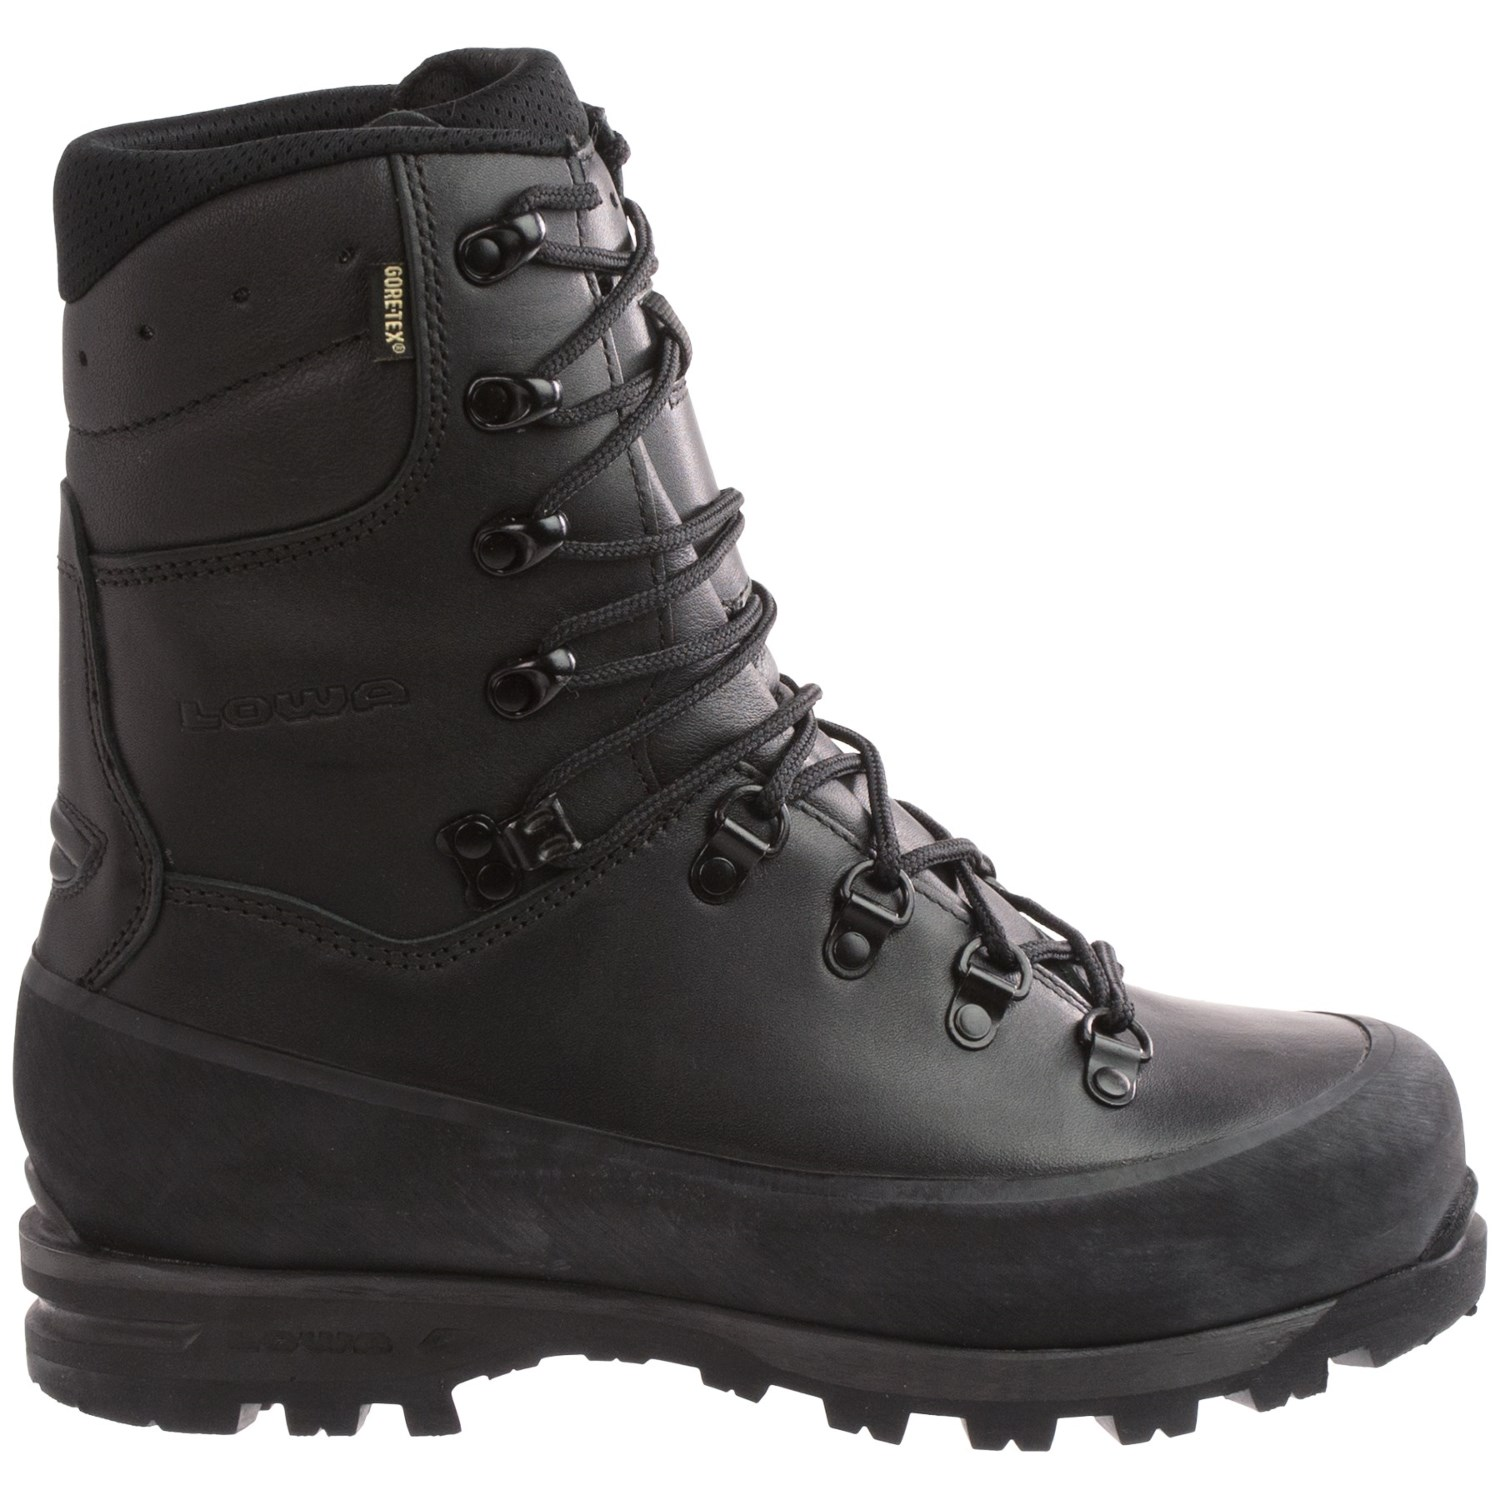 Lowa Winter Gore Tex 174 Hiking Boots For Men 9063n Save 37